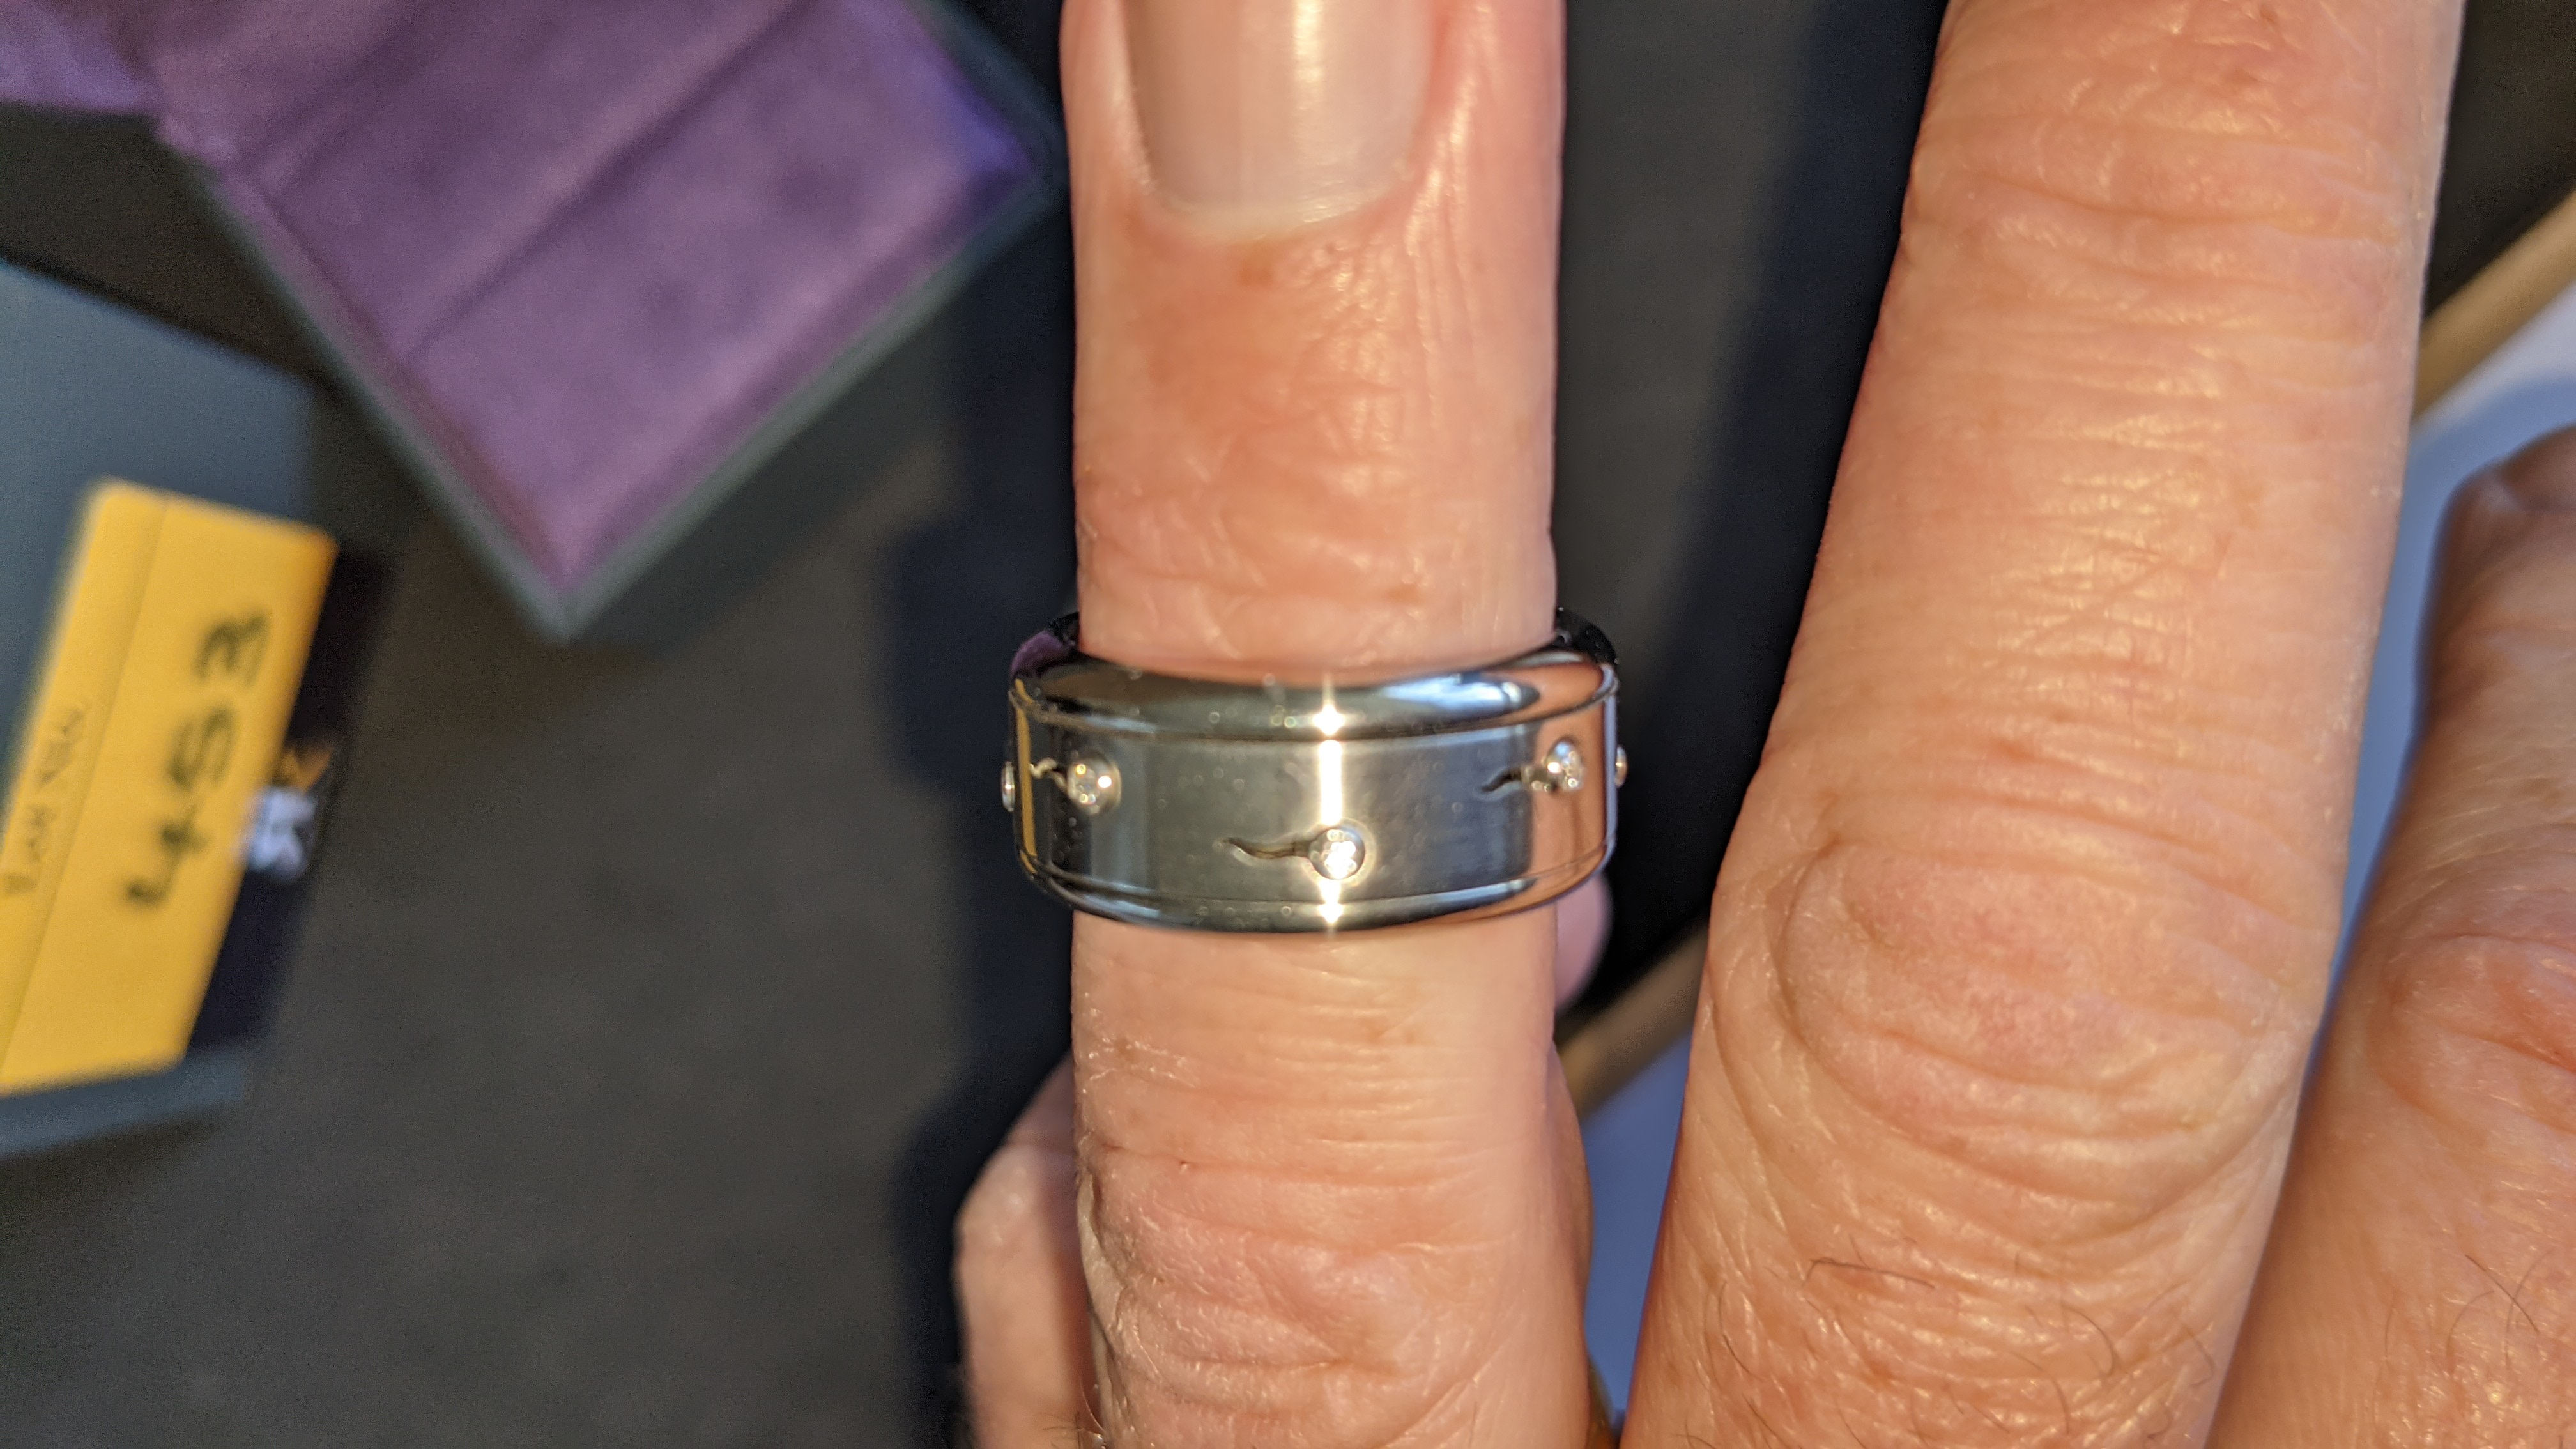 Stainless steel & diamond spin ring RRP £455 - Image 12 of 13